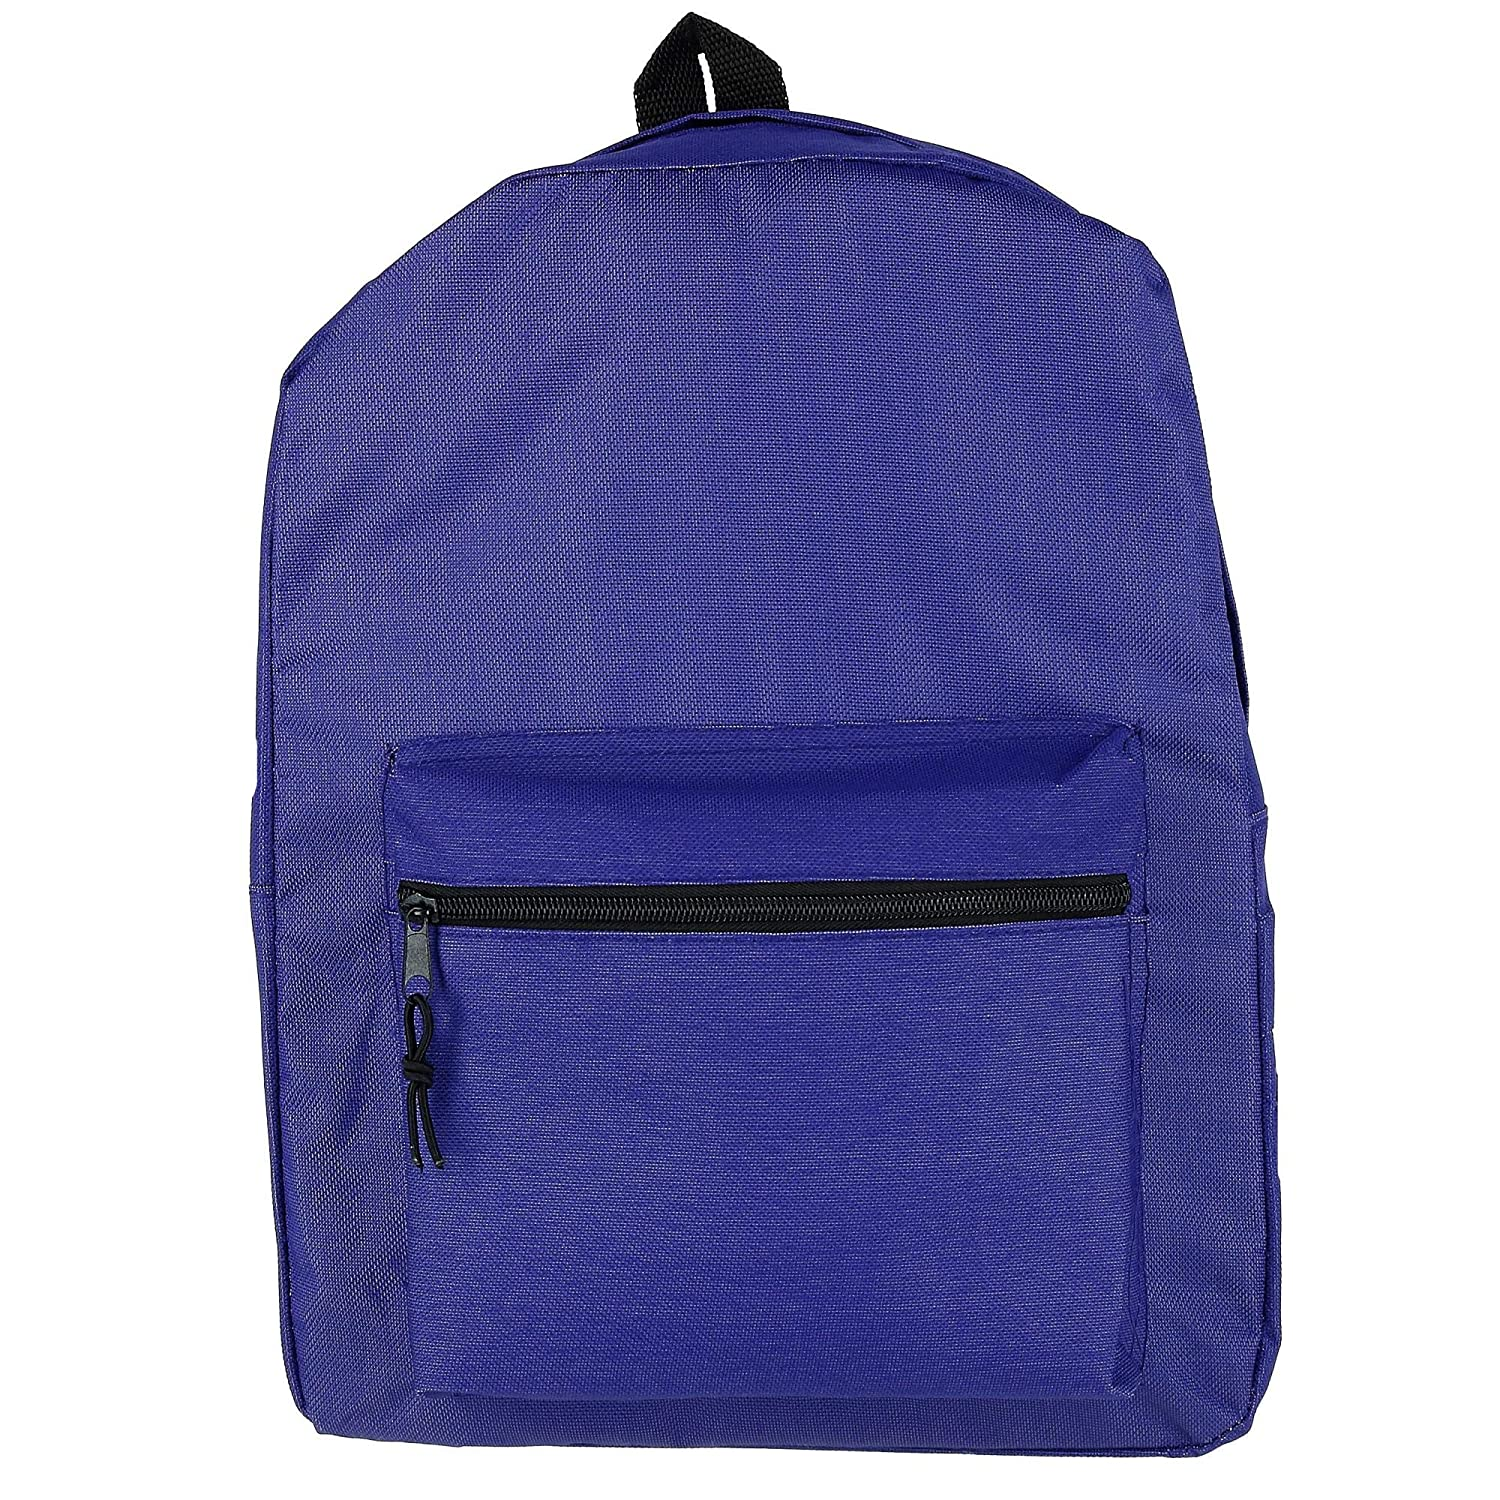 2 Moda Kids Solid Basic Backpack with Front Zipper Purple